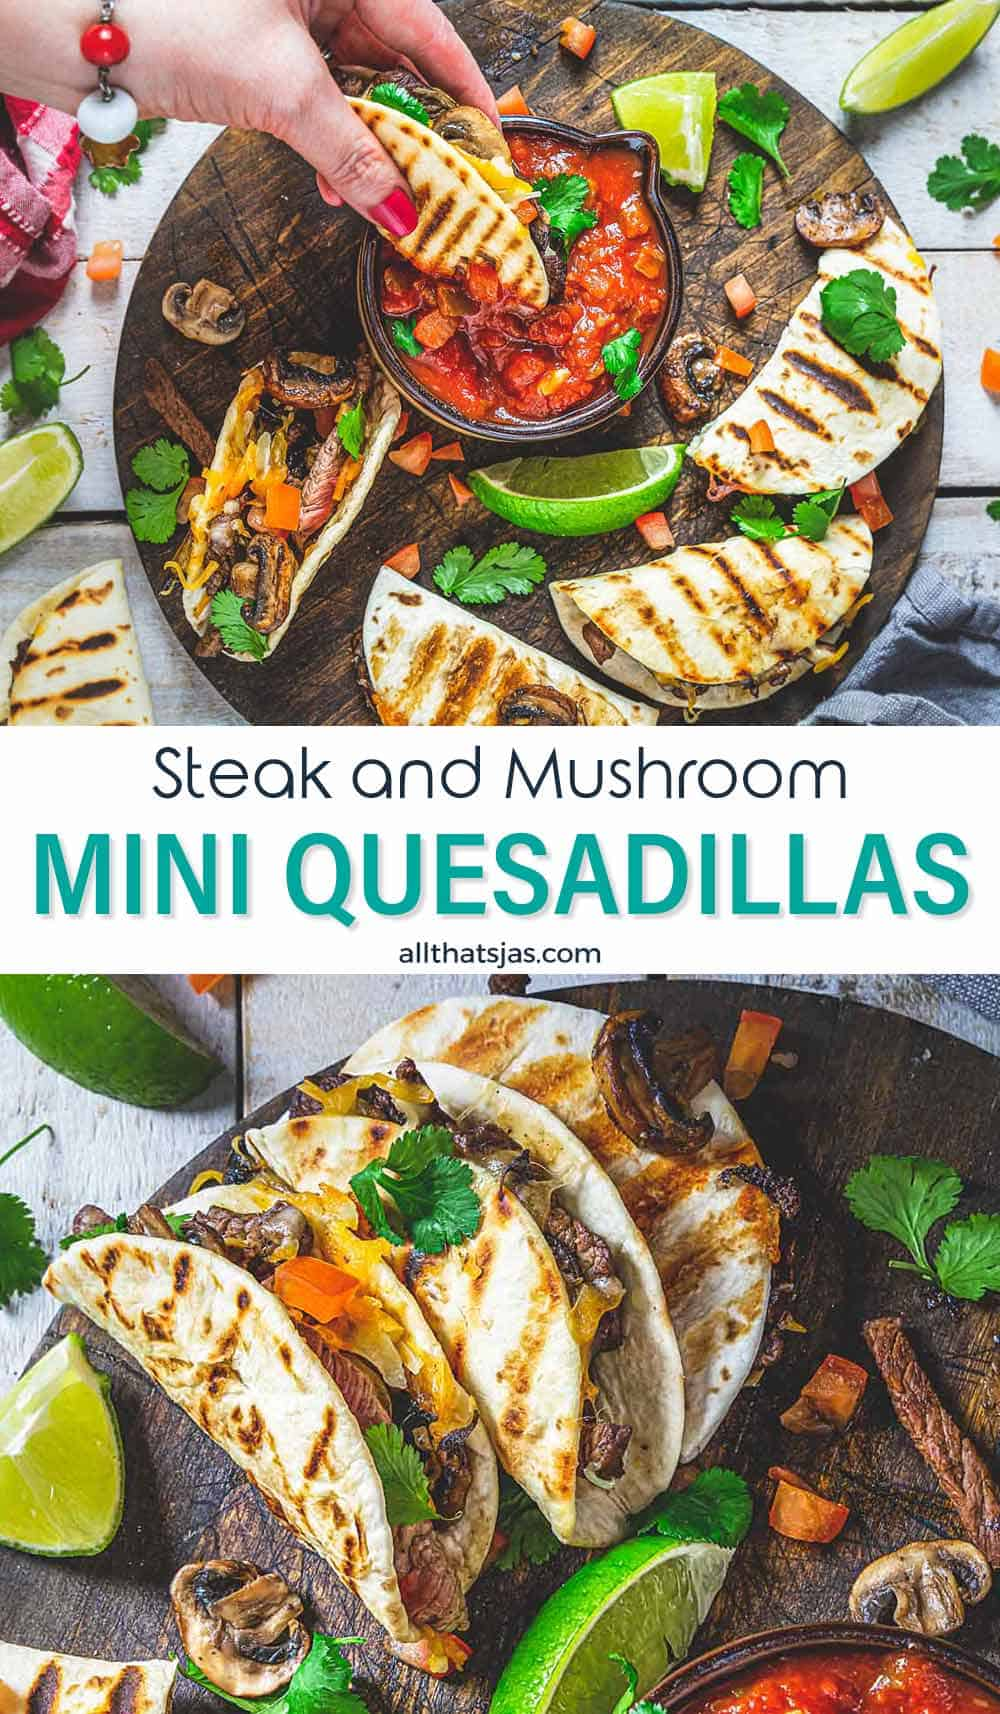 Two photo image of quesadillas and text overlay in the middle.